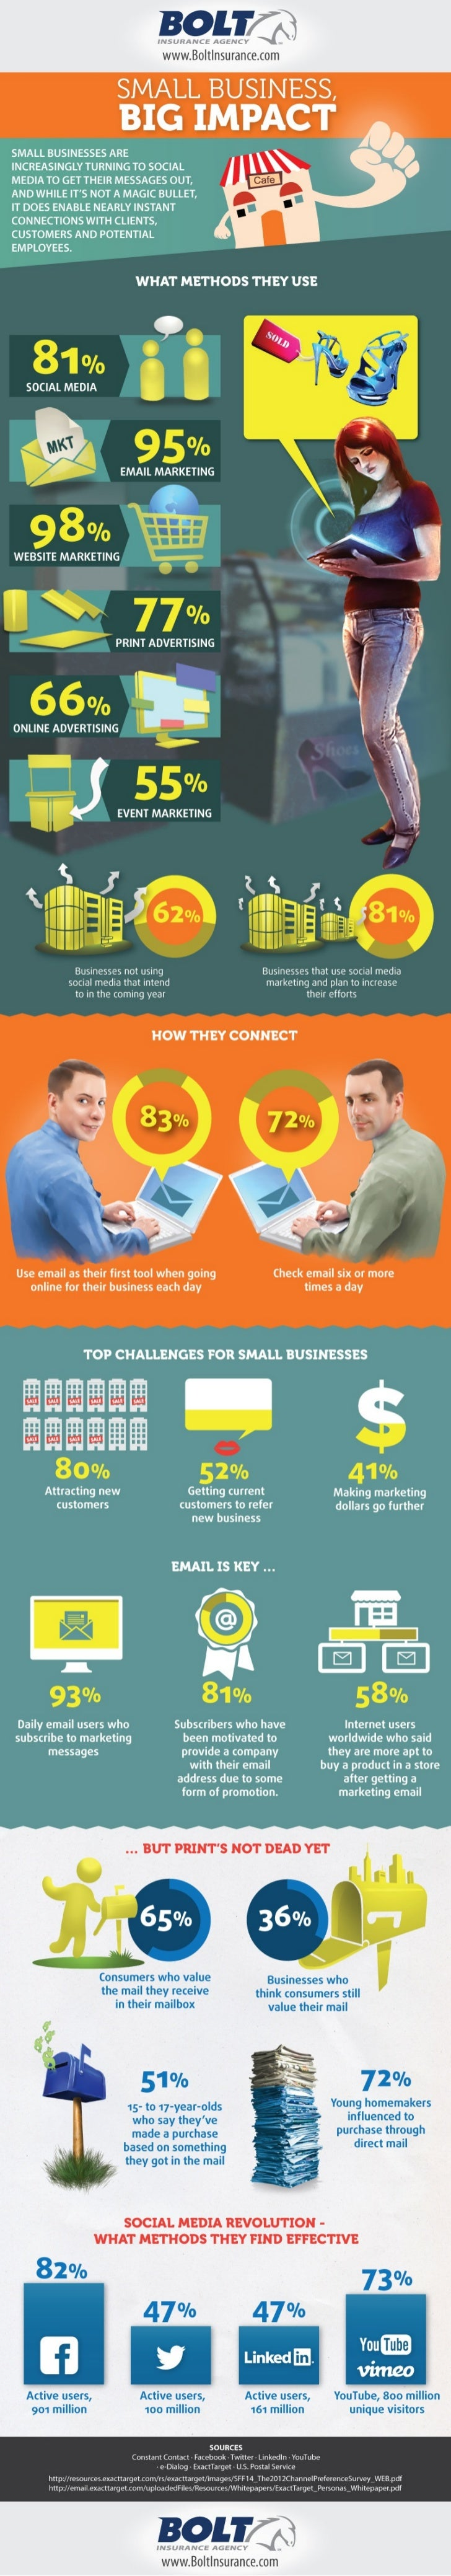 Small Business Social Media Study and Stats - by BOLT